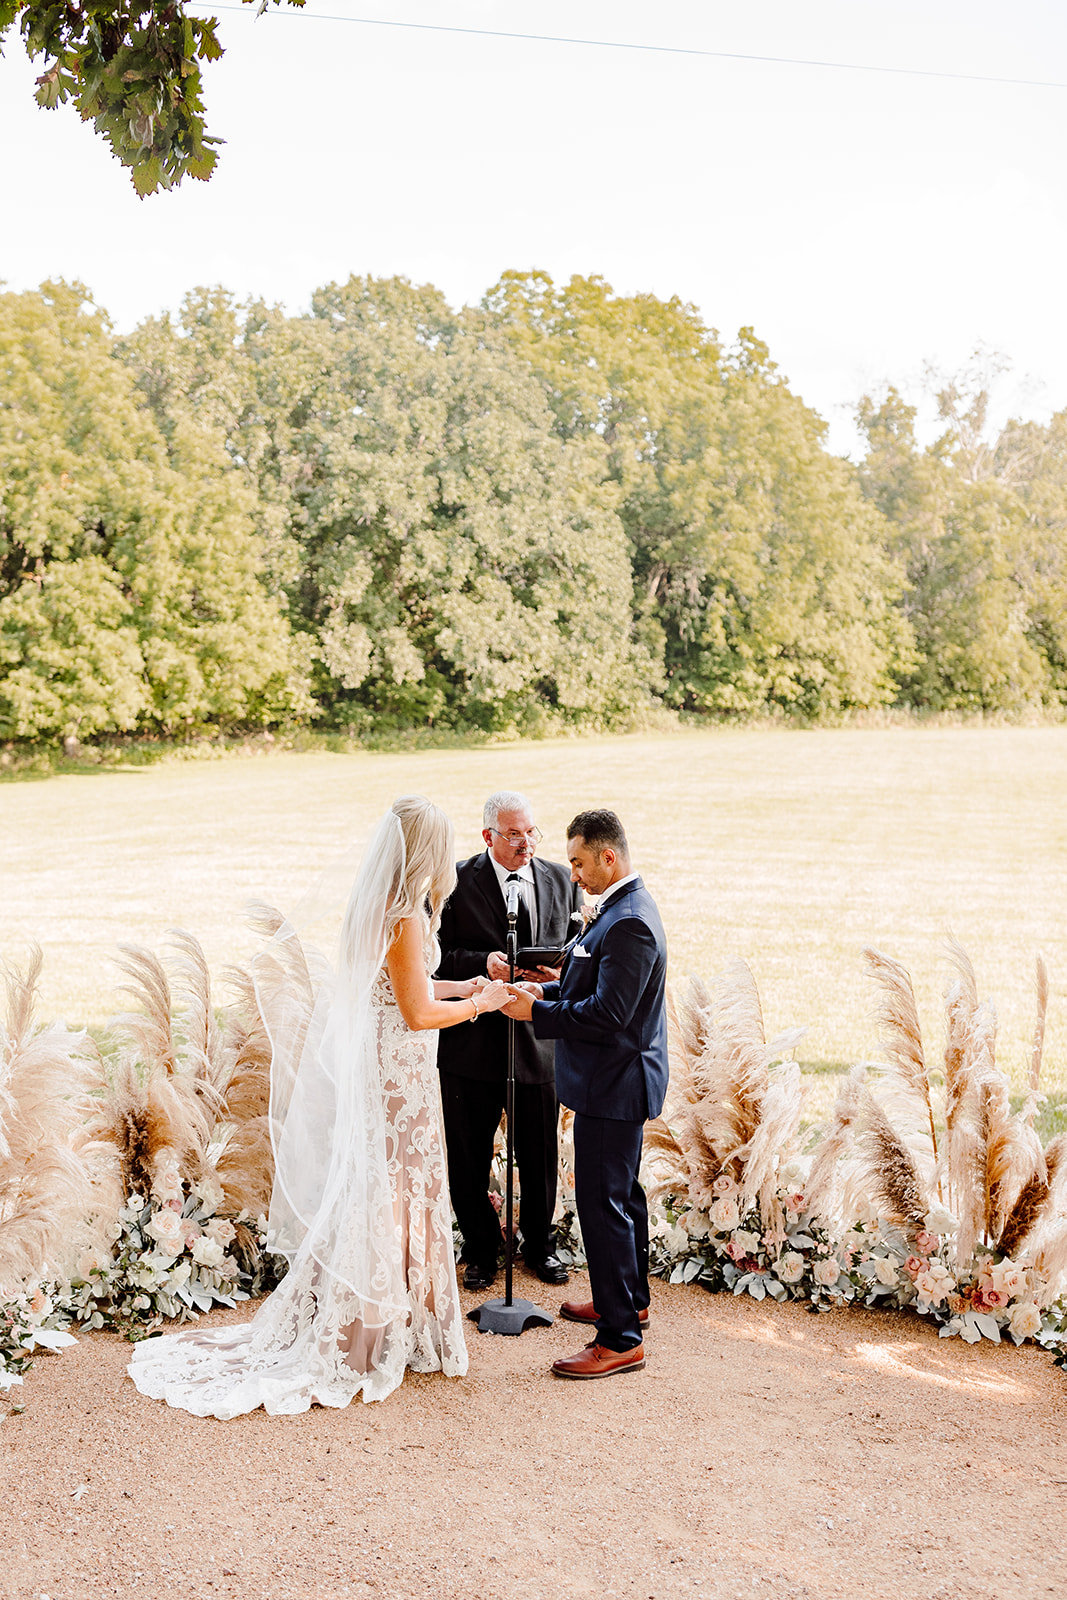 Sinatra Package with Ceremony